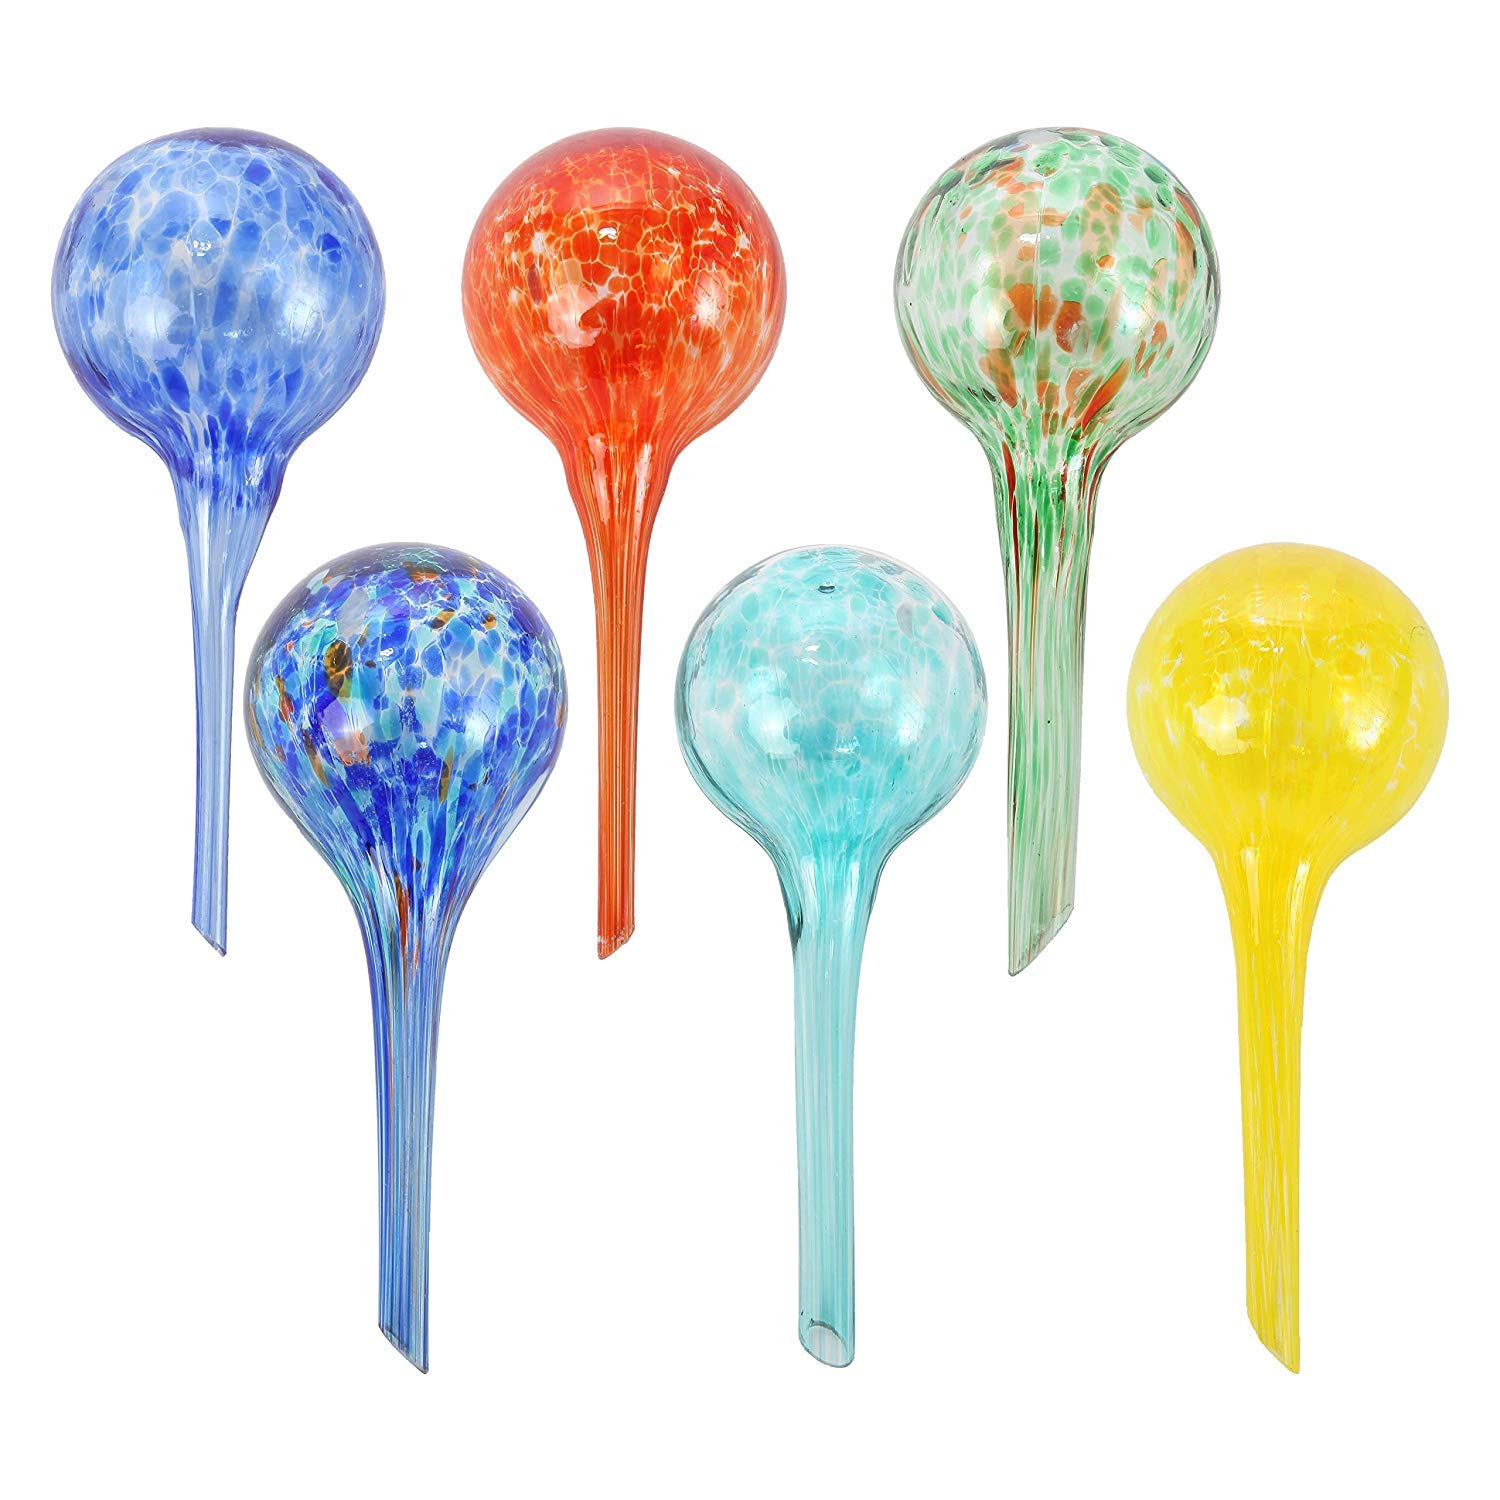 Set of 6 Self Watering Stakes | Plant Water Bulbs | Automatic Watering Glass Globes Dispenser | 6CM x 15CM,150ML Capacity | Watering Solutions for Potted Plant by Resense